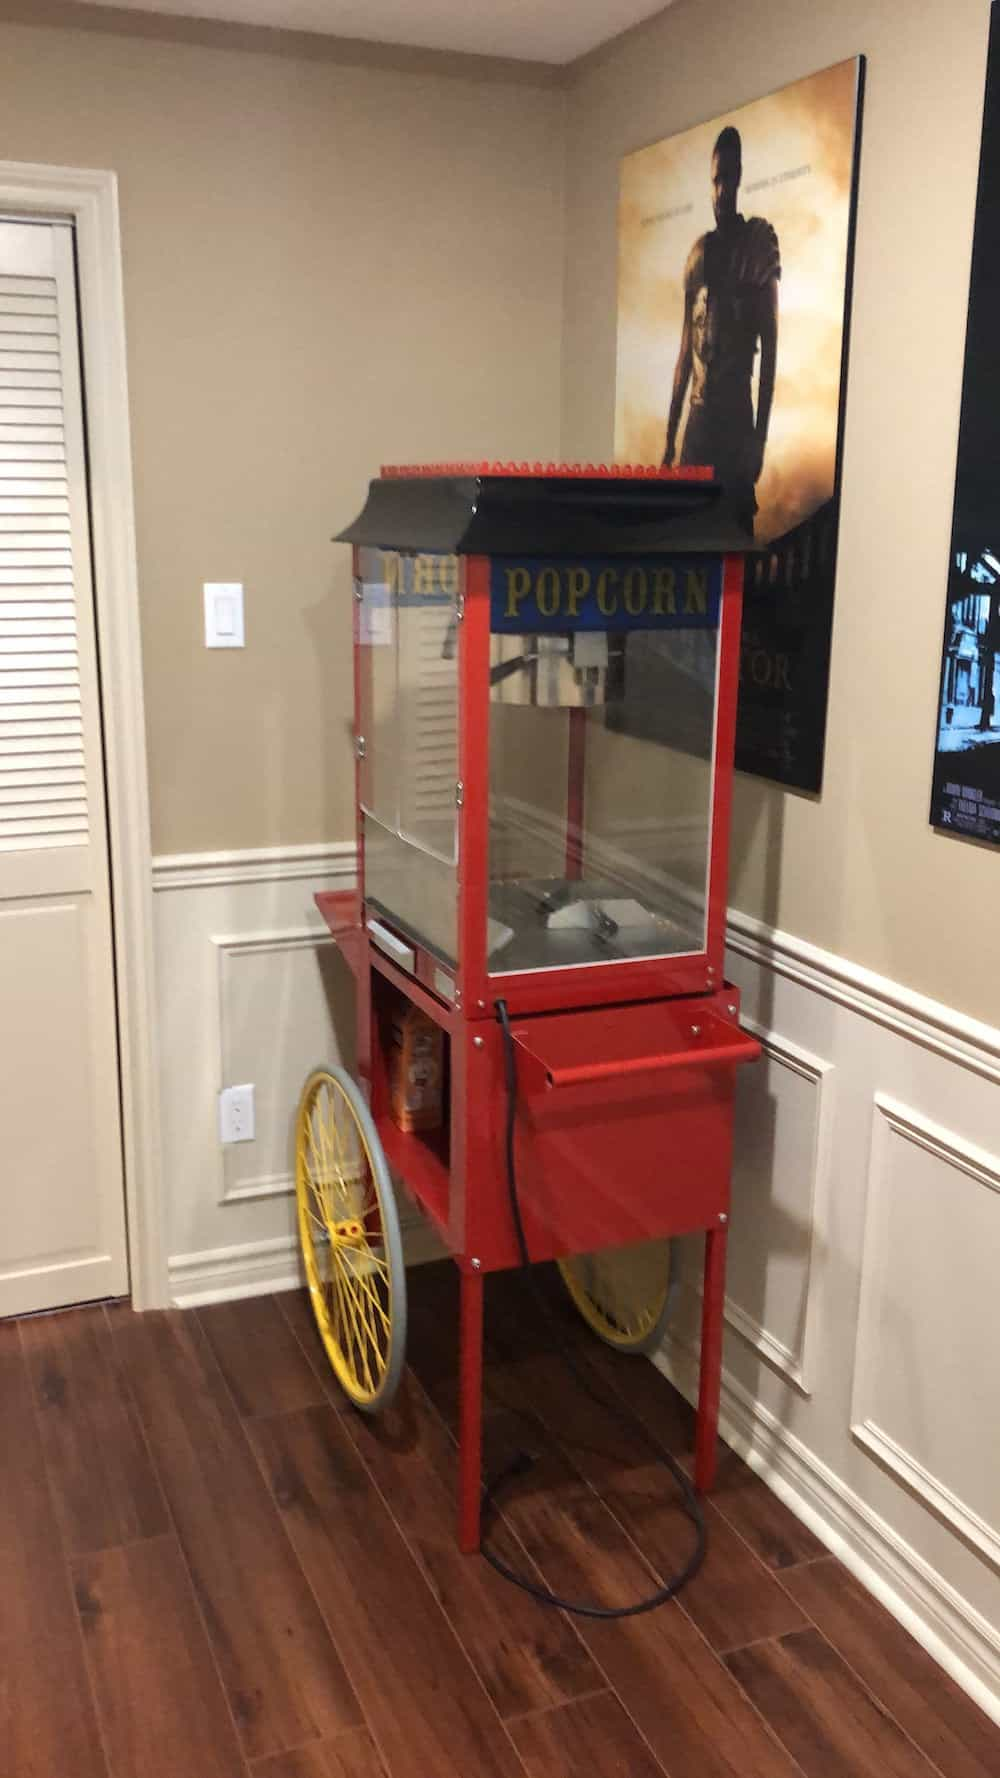 Red cart style popcorn maker next to home theater